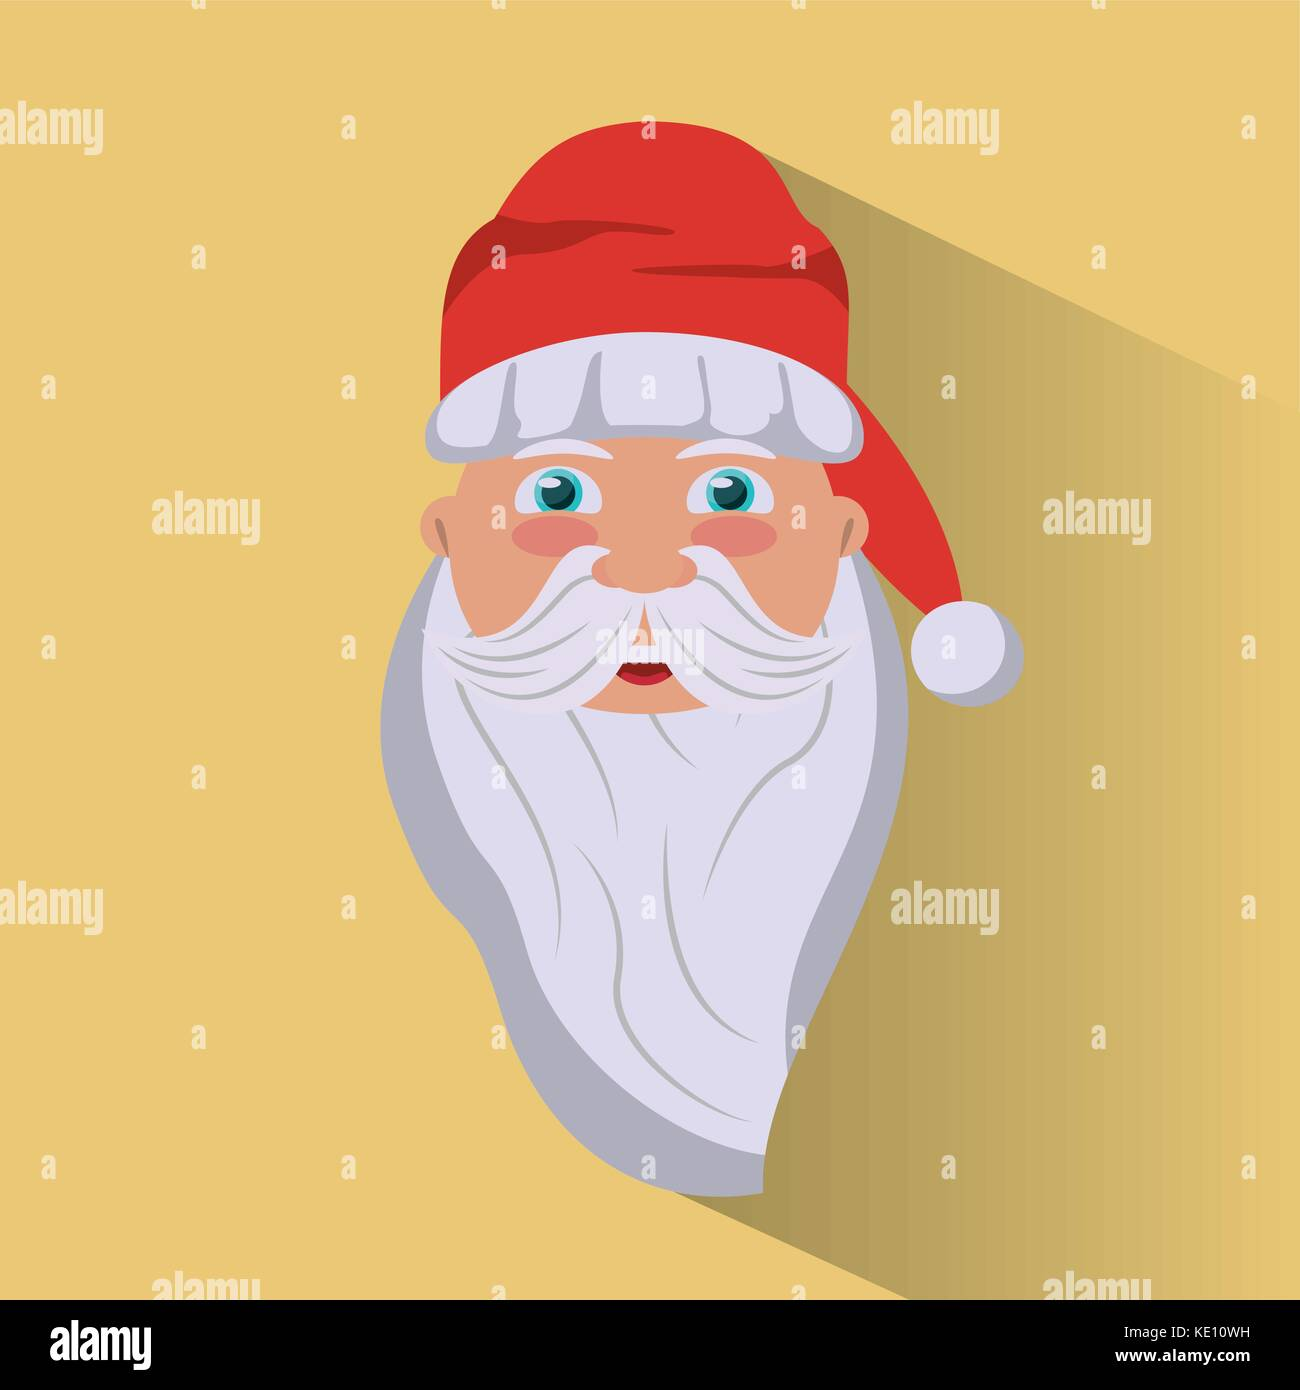 Santa Claus Office Stock Photos & Santa Claus Office Stock Images ...